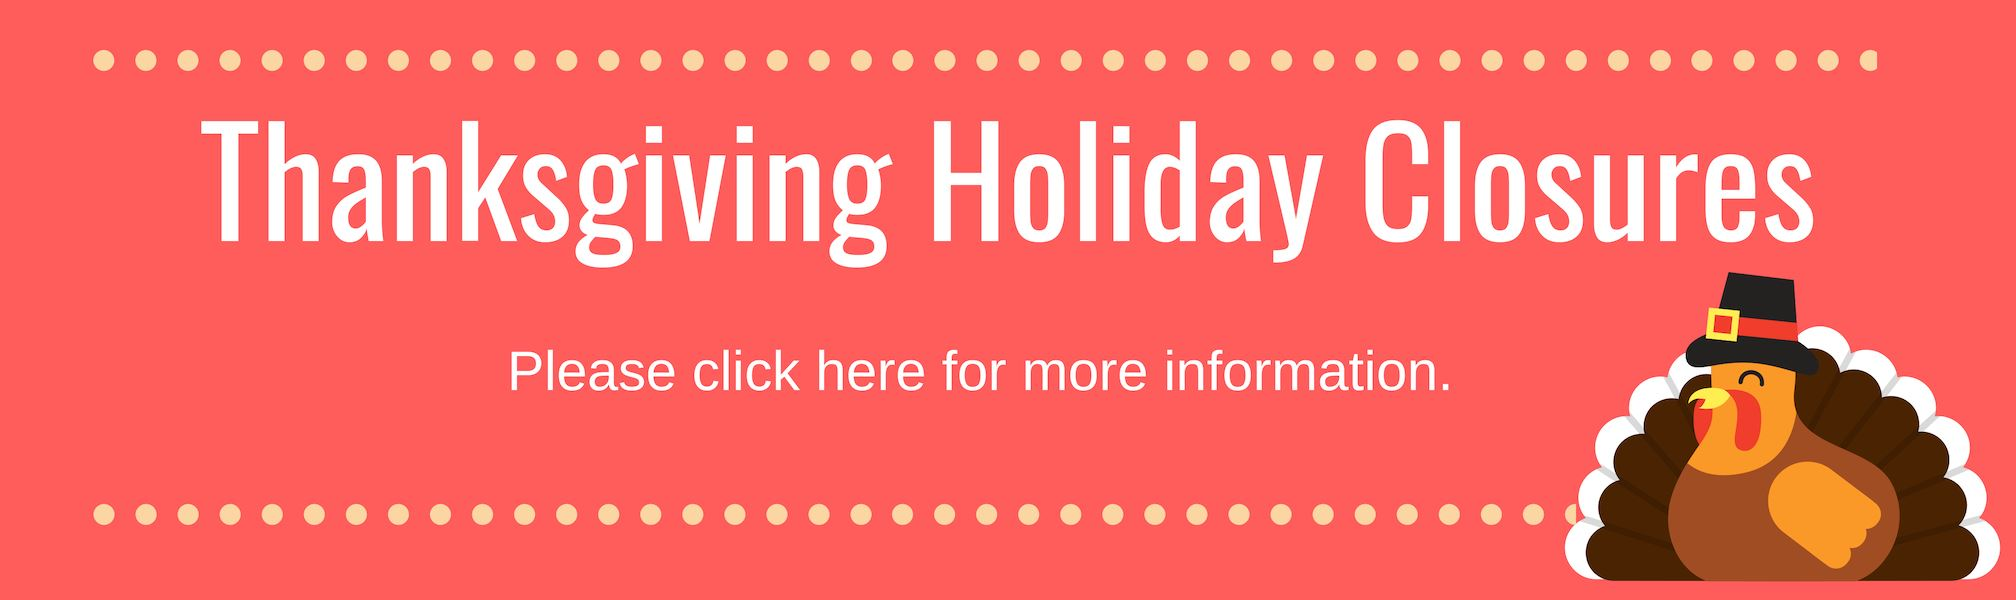 Thanksgiving Holiday Closures